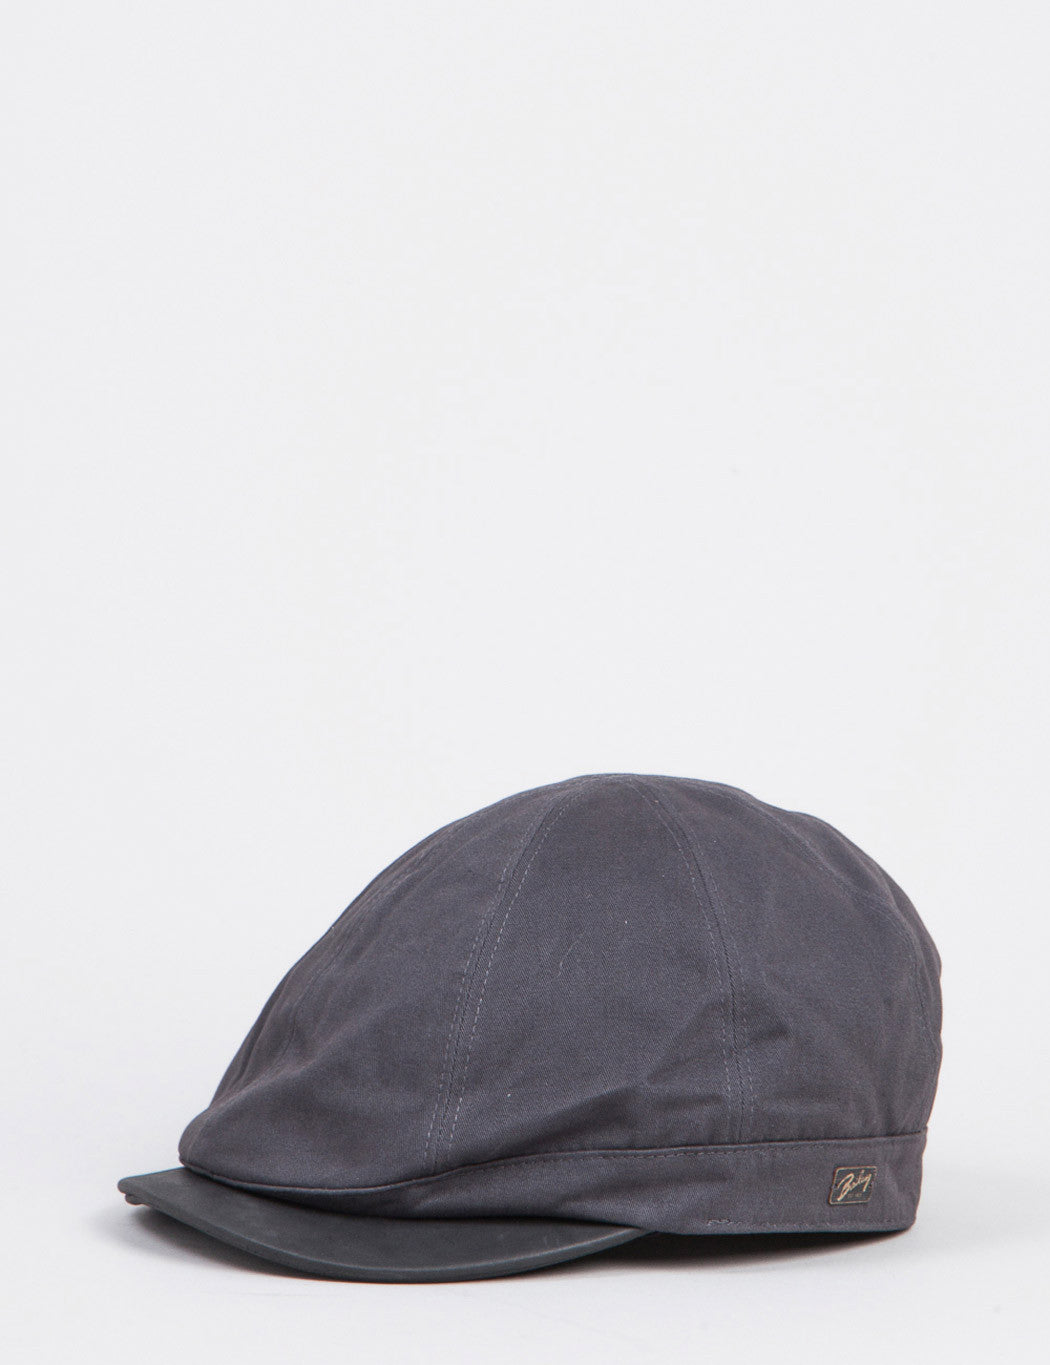 Bailey Rodis Leather Peak Flat Cap - Charcoal